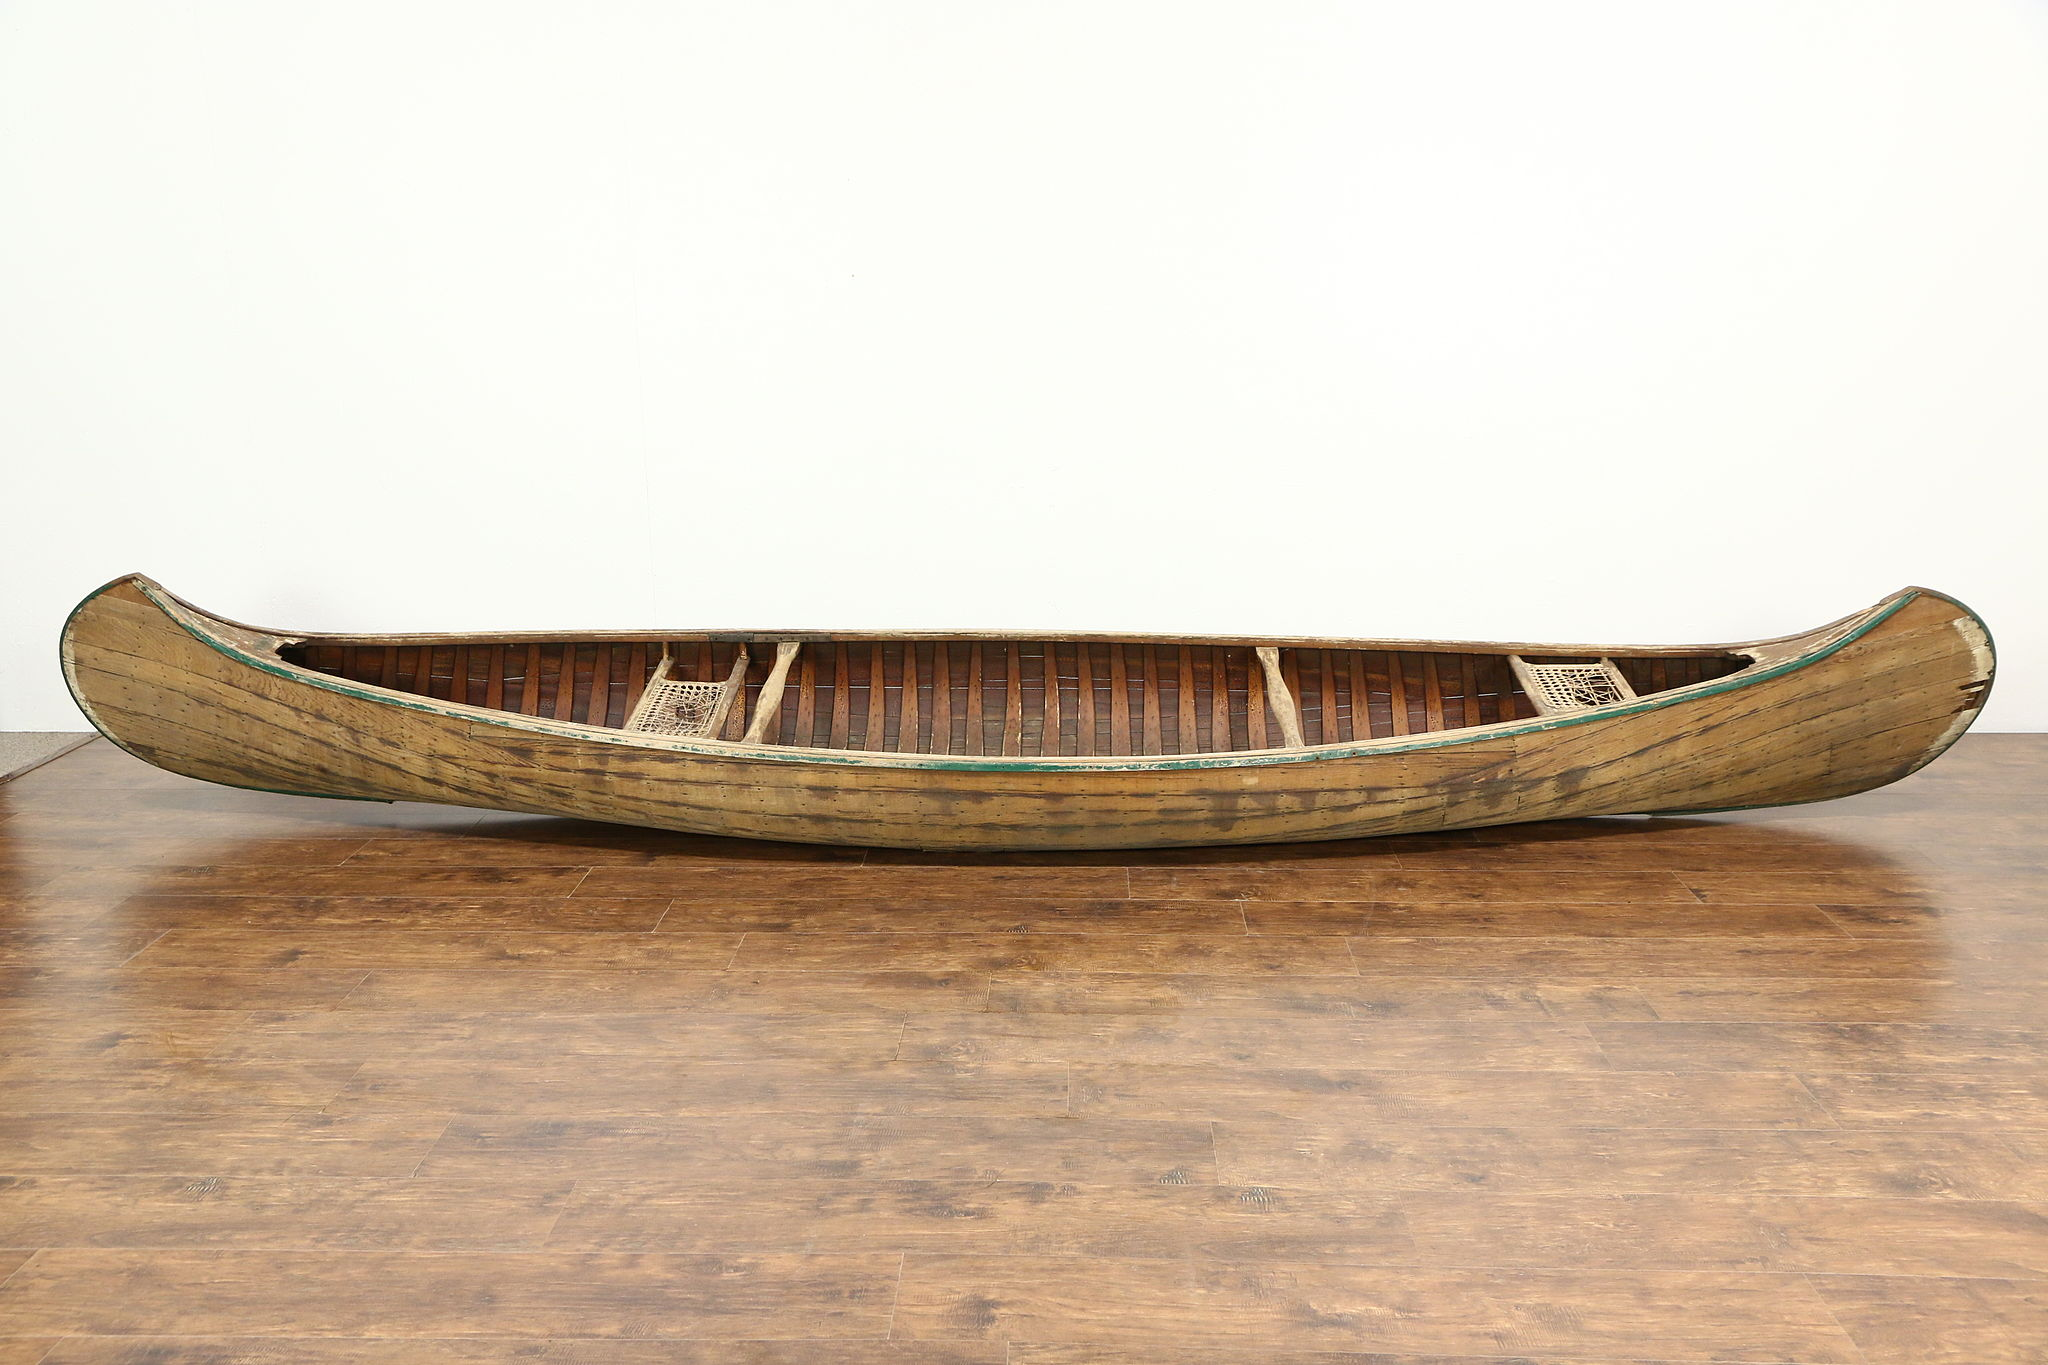 Sold Old Town Maine Signed Antique 16 Wood Canoe For